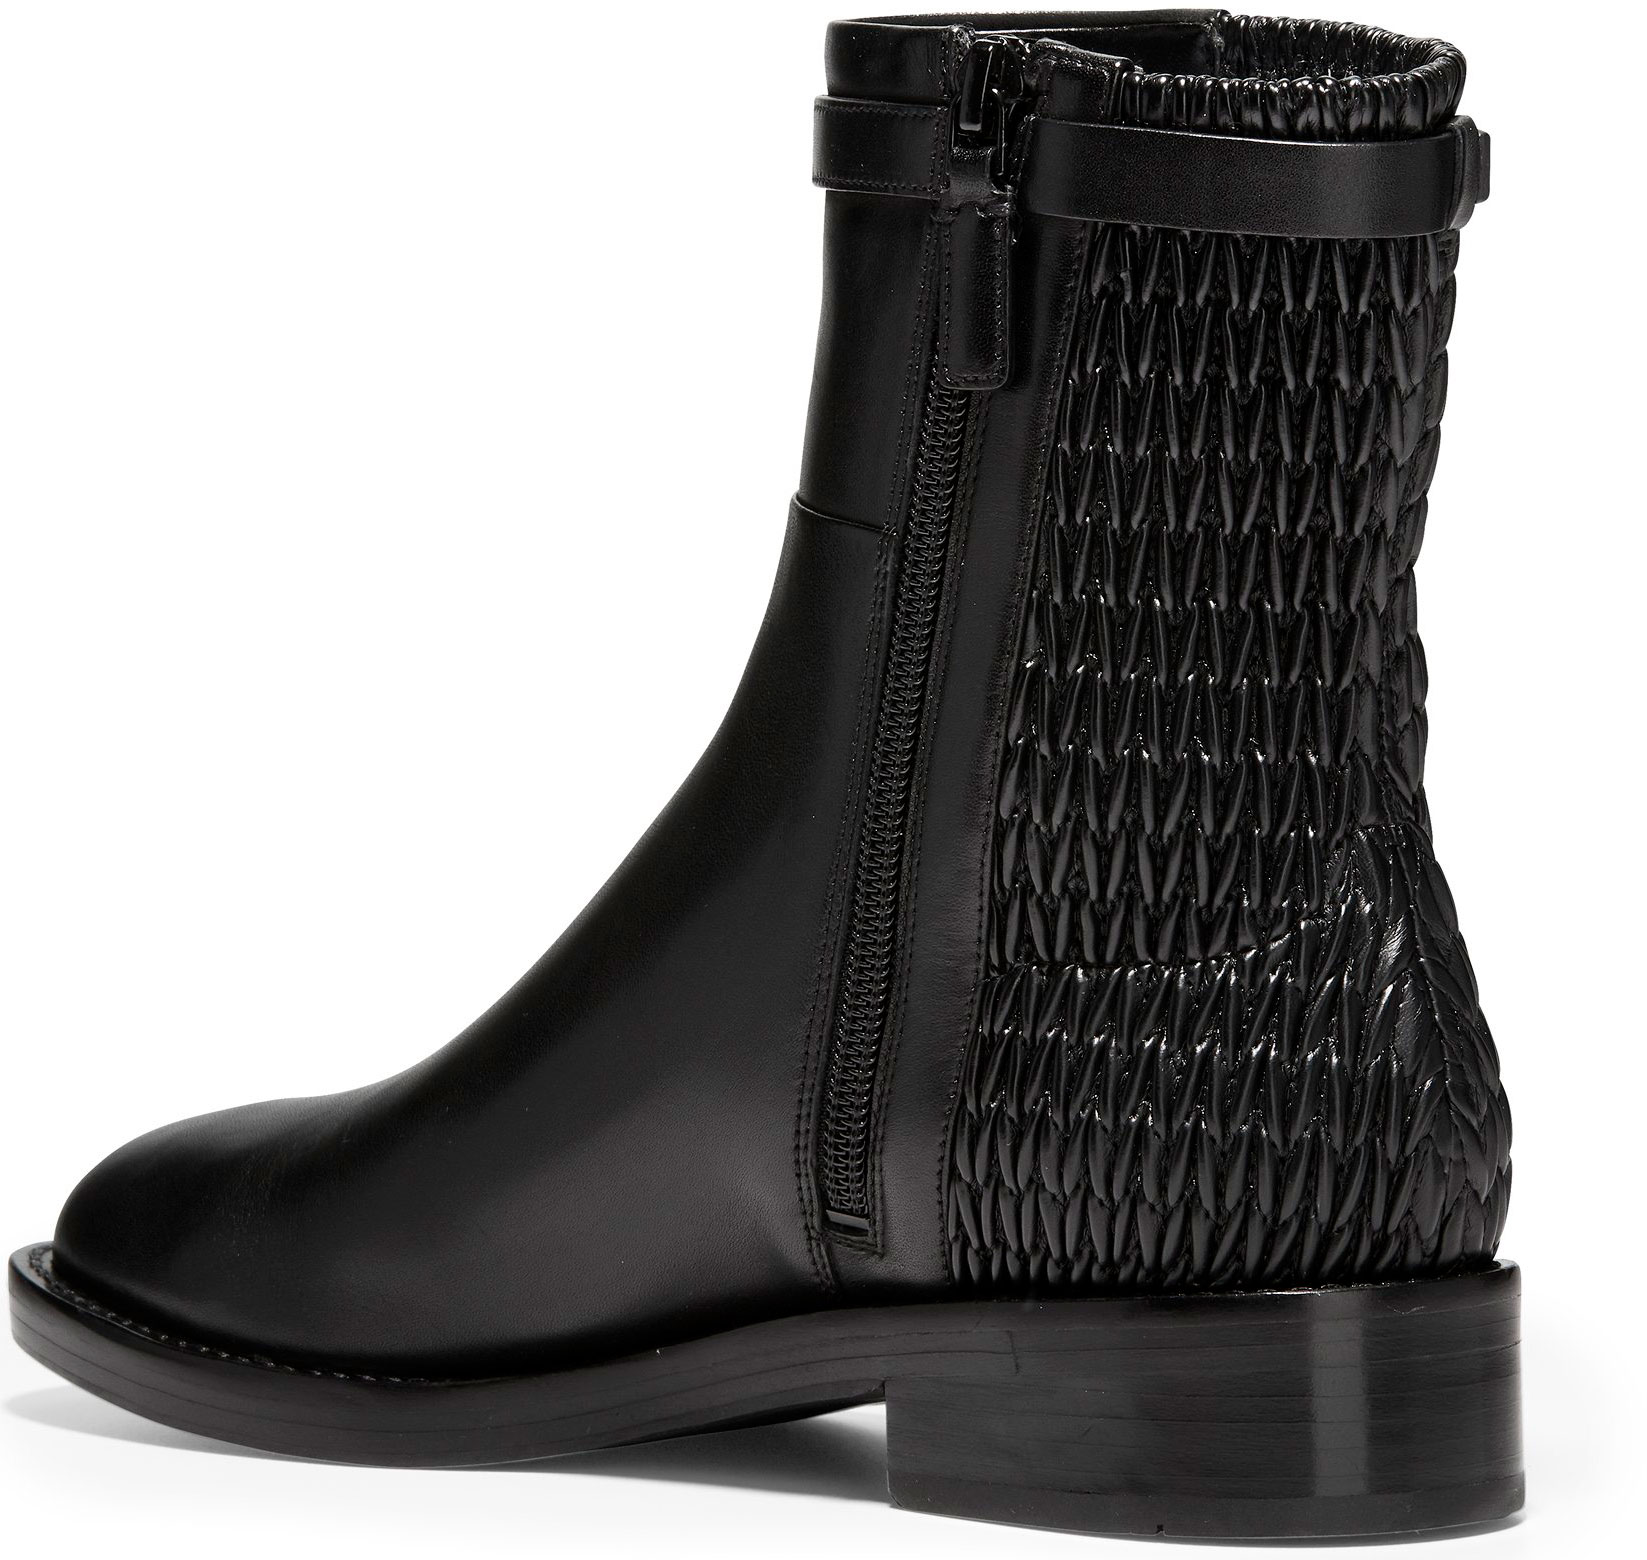 311c8b9971e Tap to expand · Cole Haan Women s Lexi Grand Stretch Strap Bootie W12055  Black Leather-Weave Stretch ...